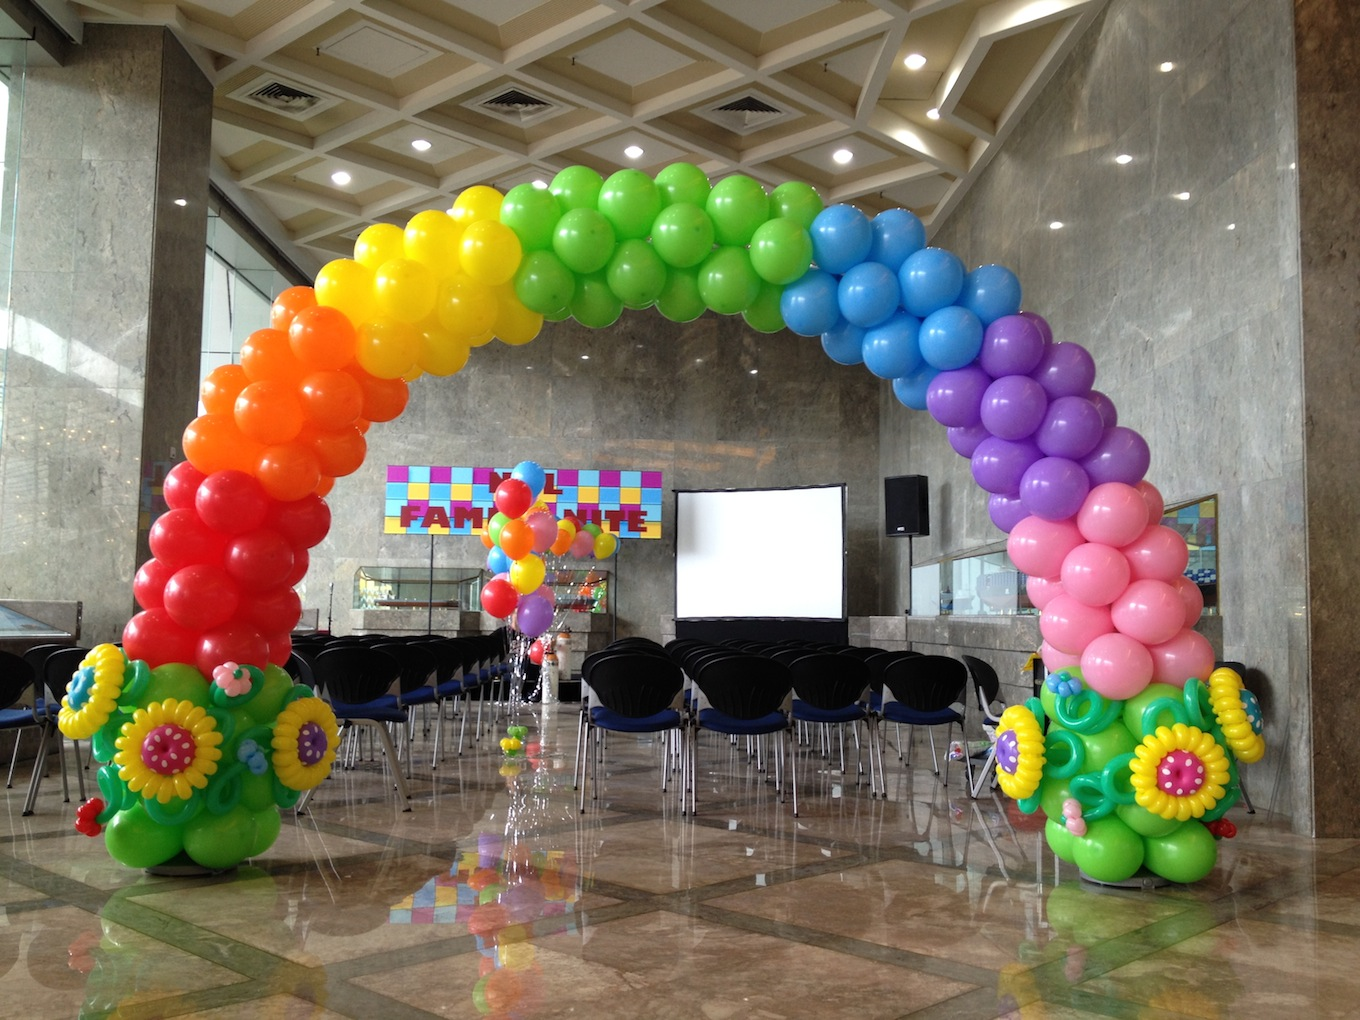 Balloon decoration ideas that balloons for Balloon decoration at home